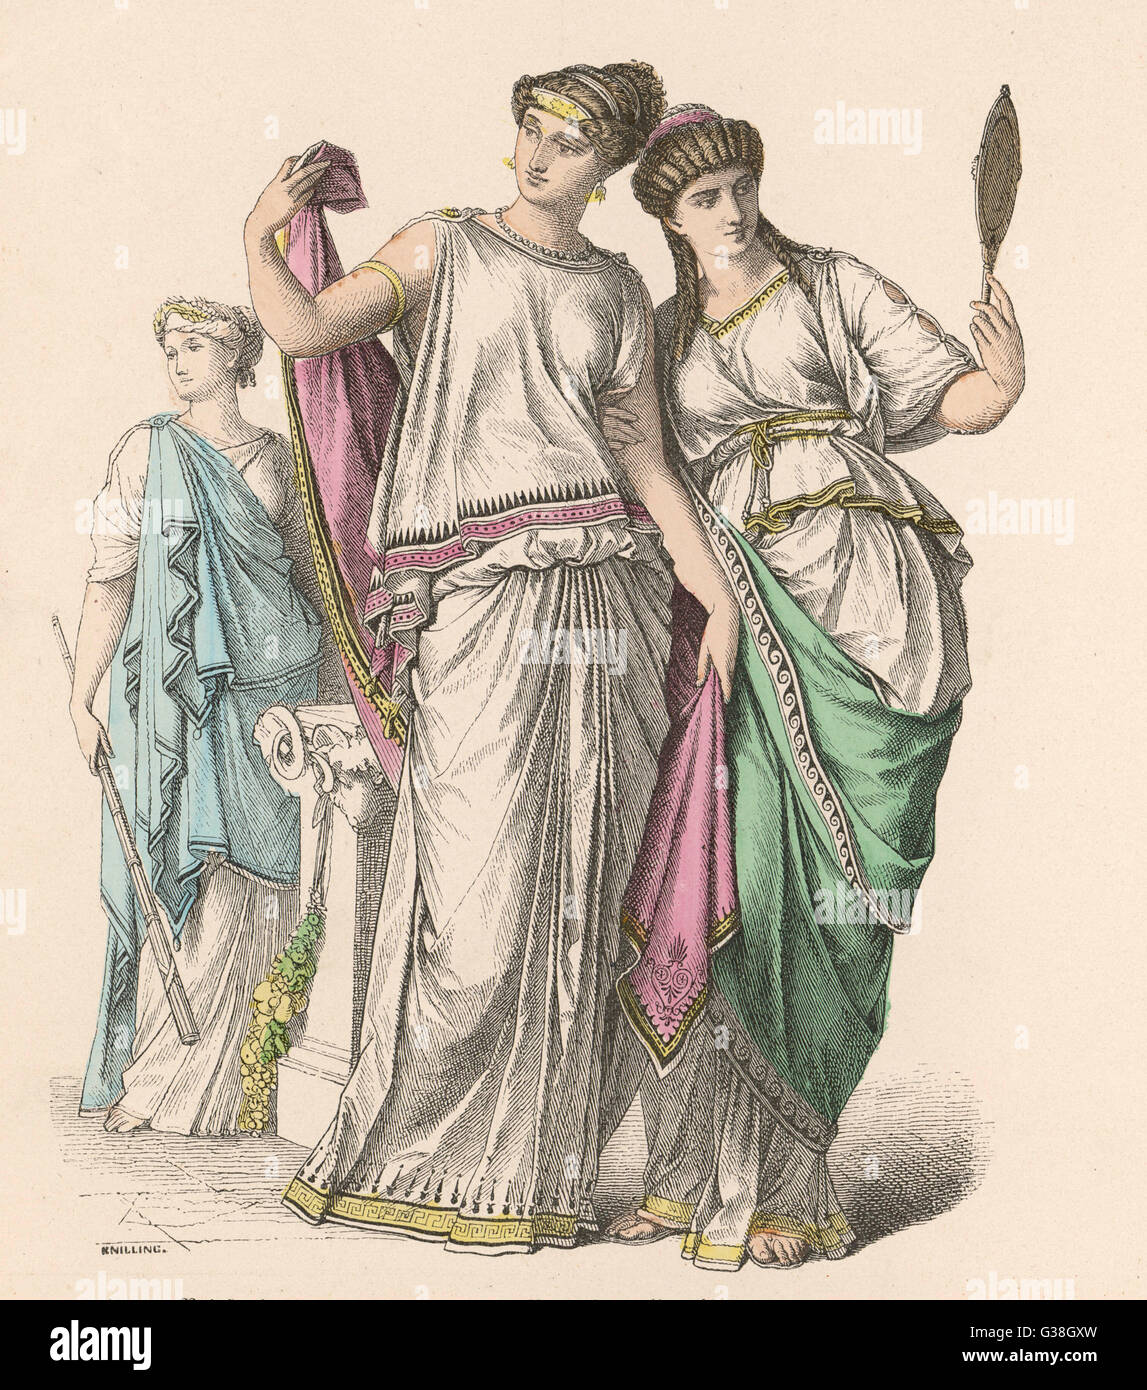 Aristocratic ladies and a  Priestess. - Stock Image